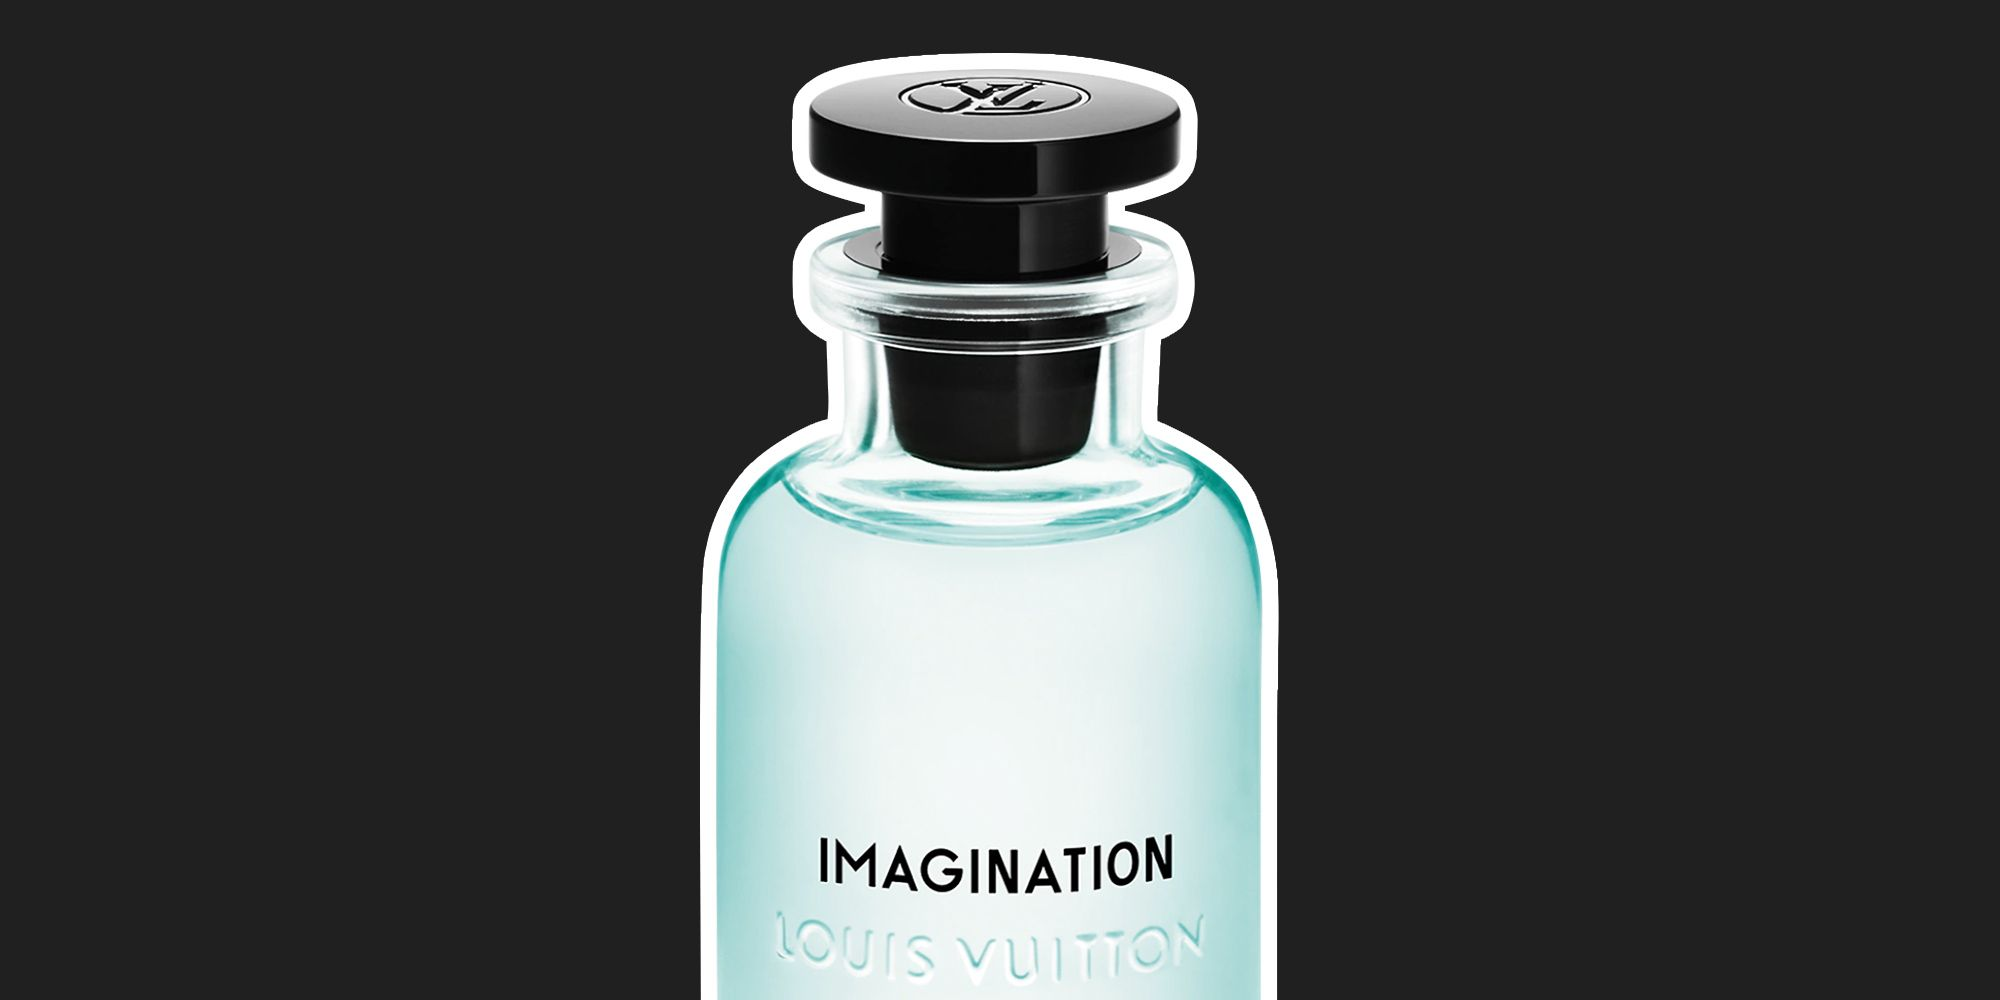 The Best Cologne Will Help You Smell Like You, Only Better